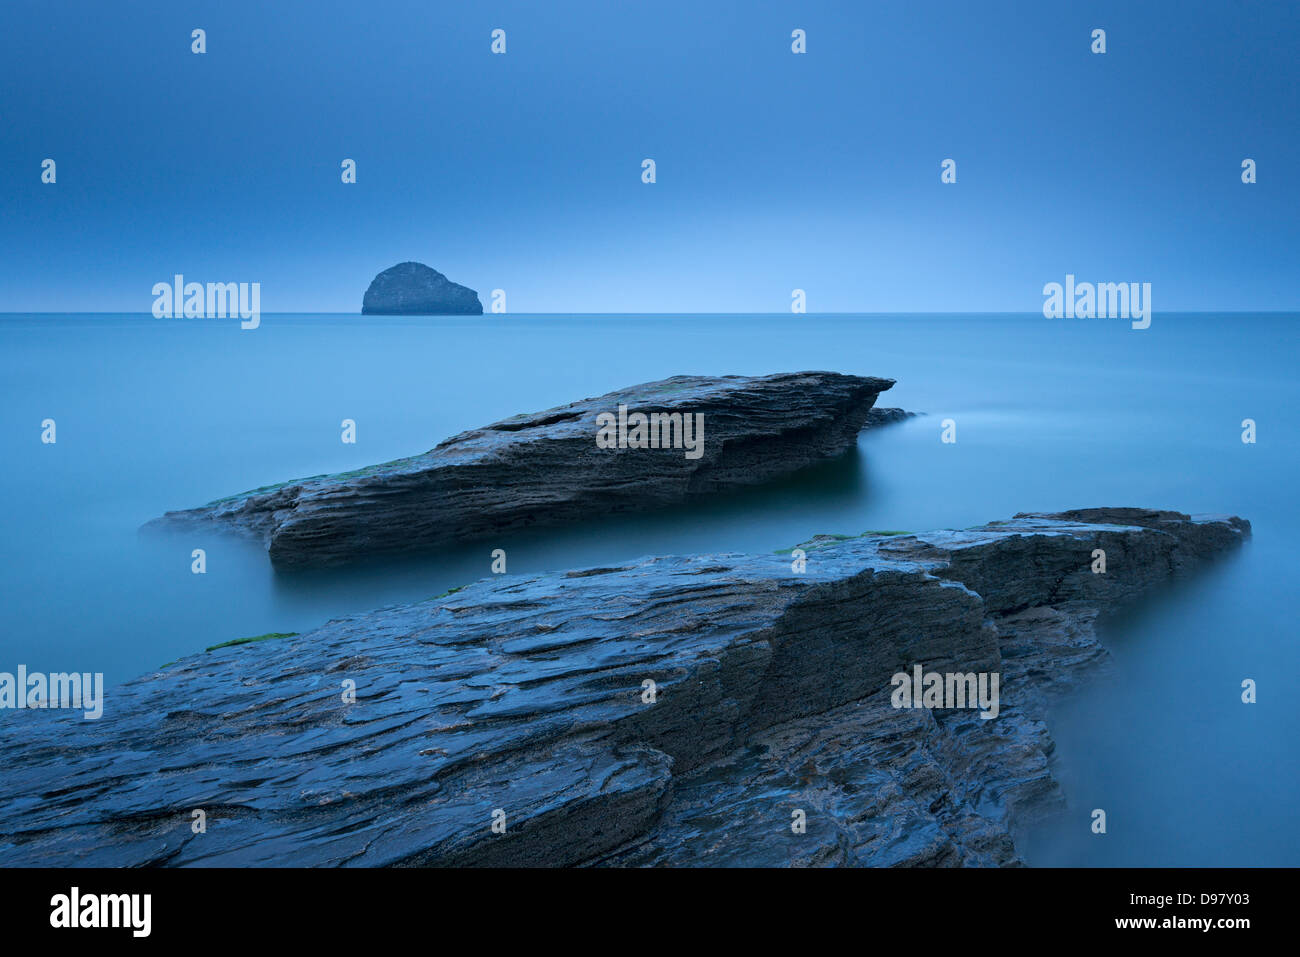 Twilight on the rocky North Cornish coast at Trebarwith Strand, Cornwall, England. Summer (June) 2013. - Stock Image